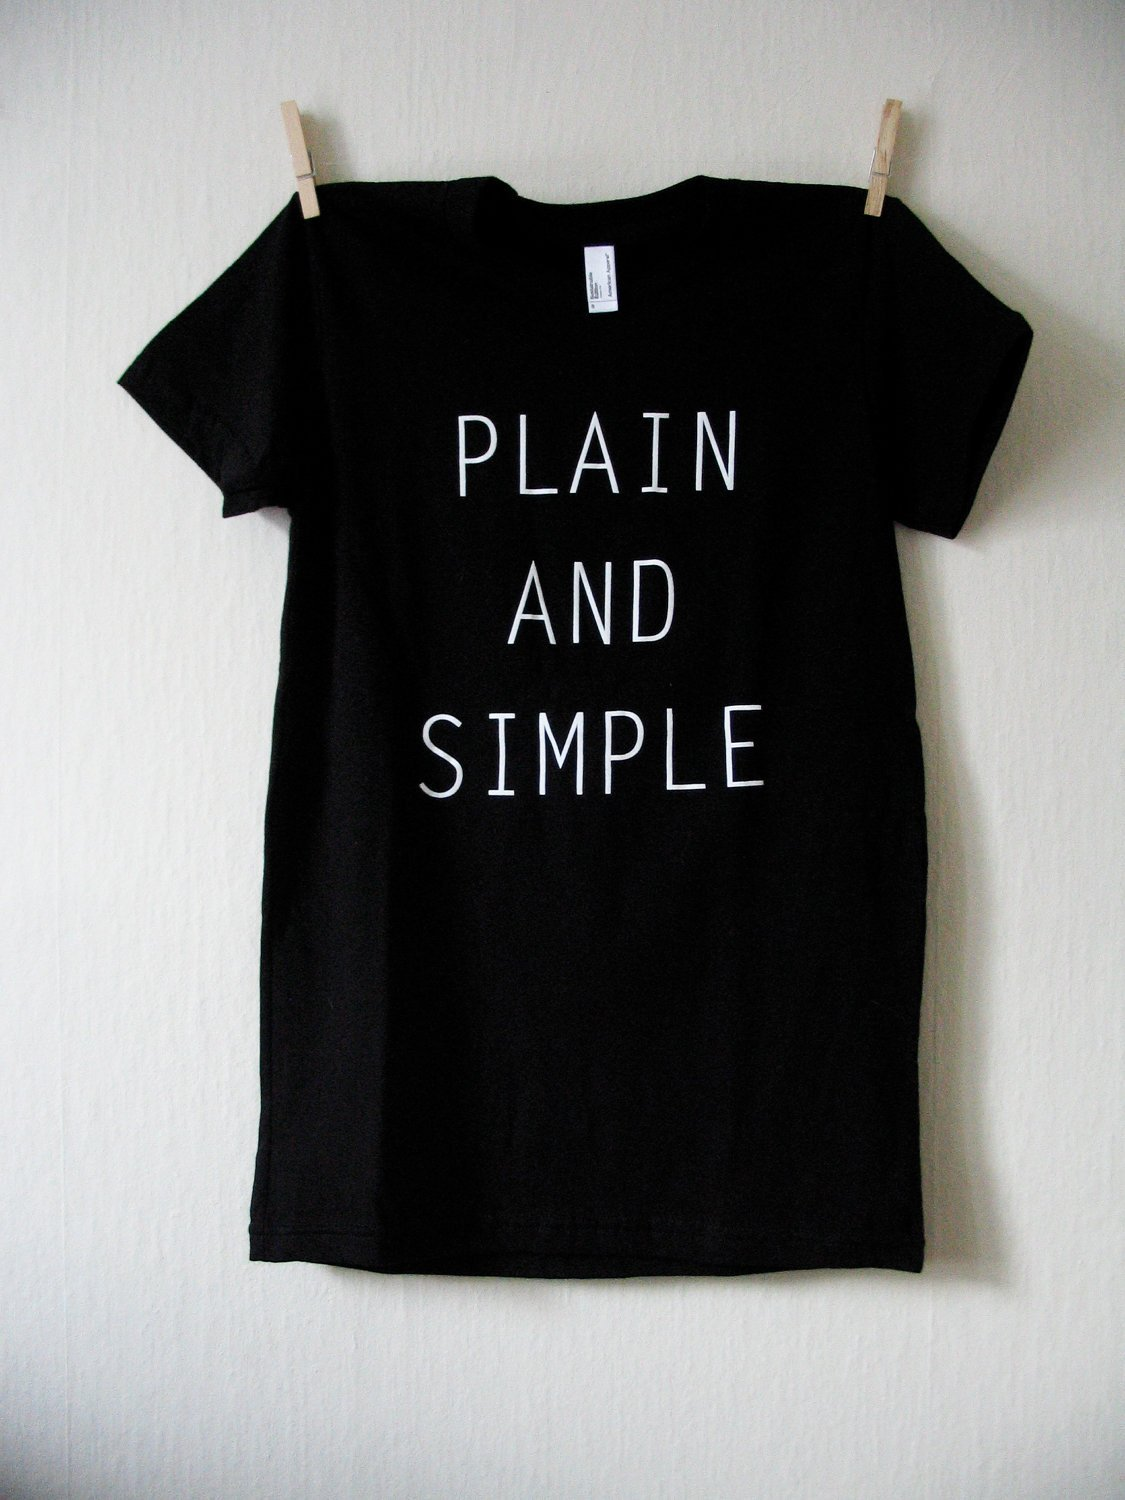 PLAIN AND SIMPLE -  (BACK of Shirt: Contains a small 'Wider Awake' Logo)  $9.00